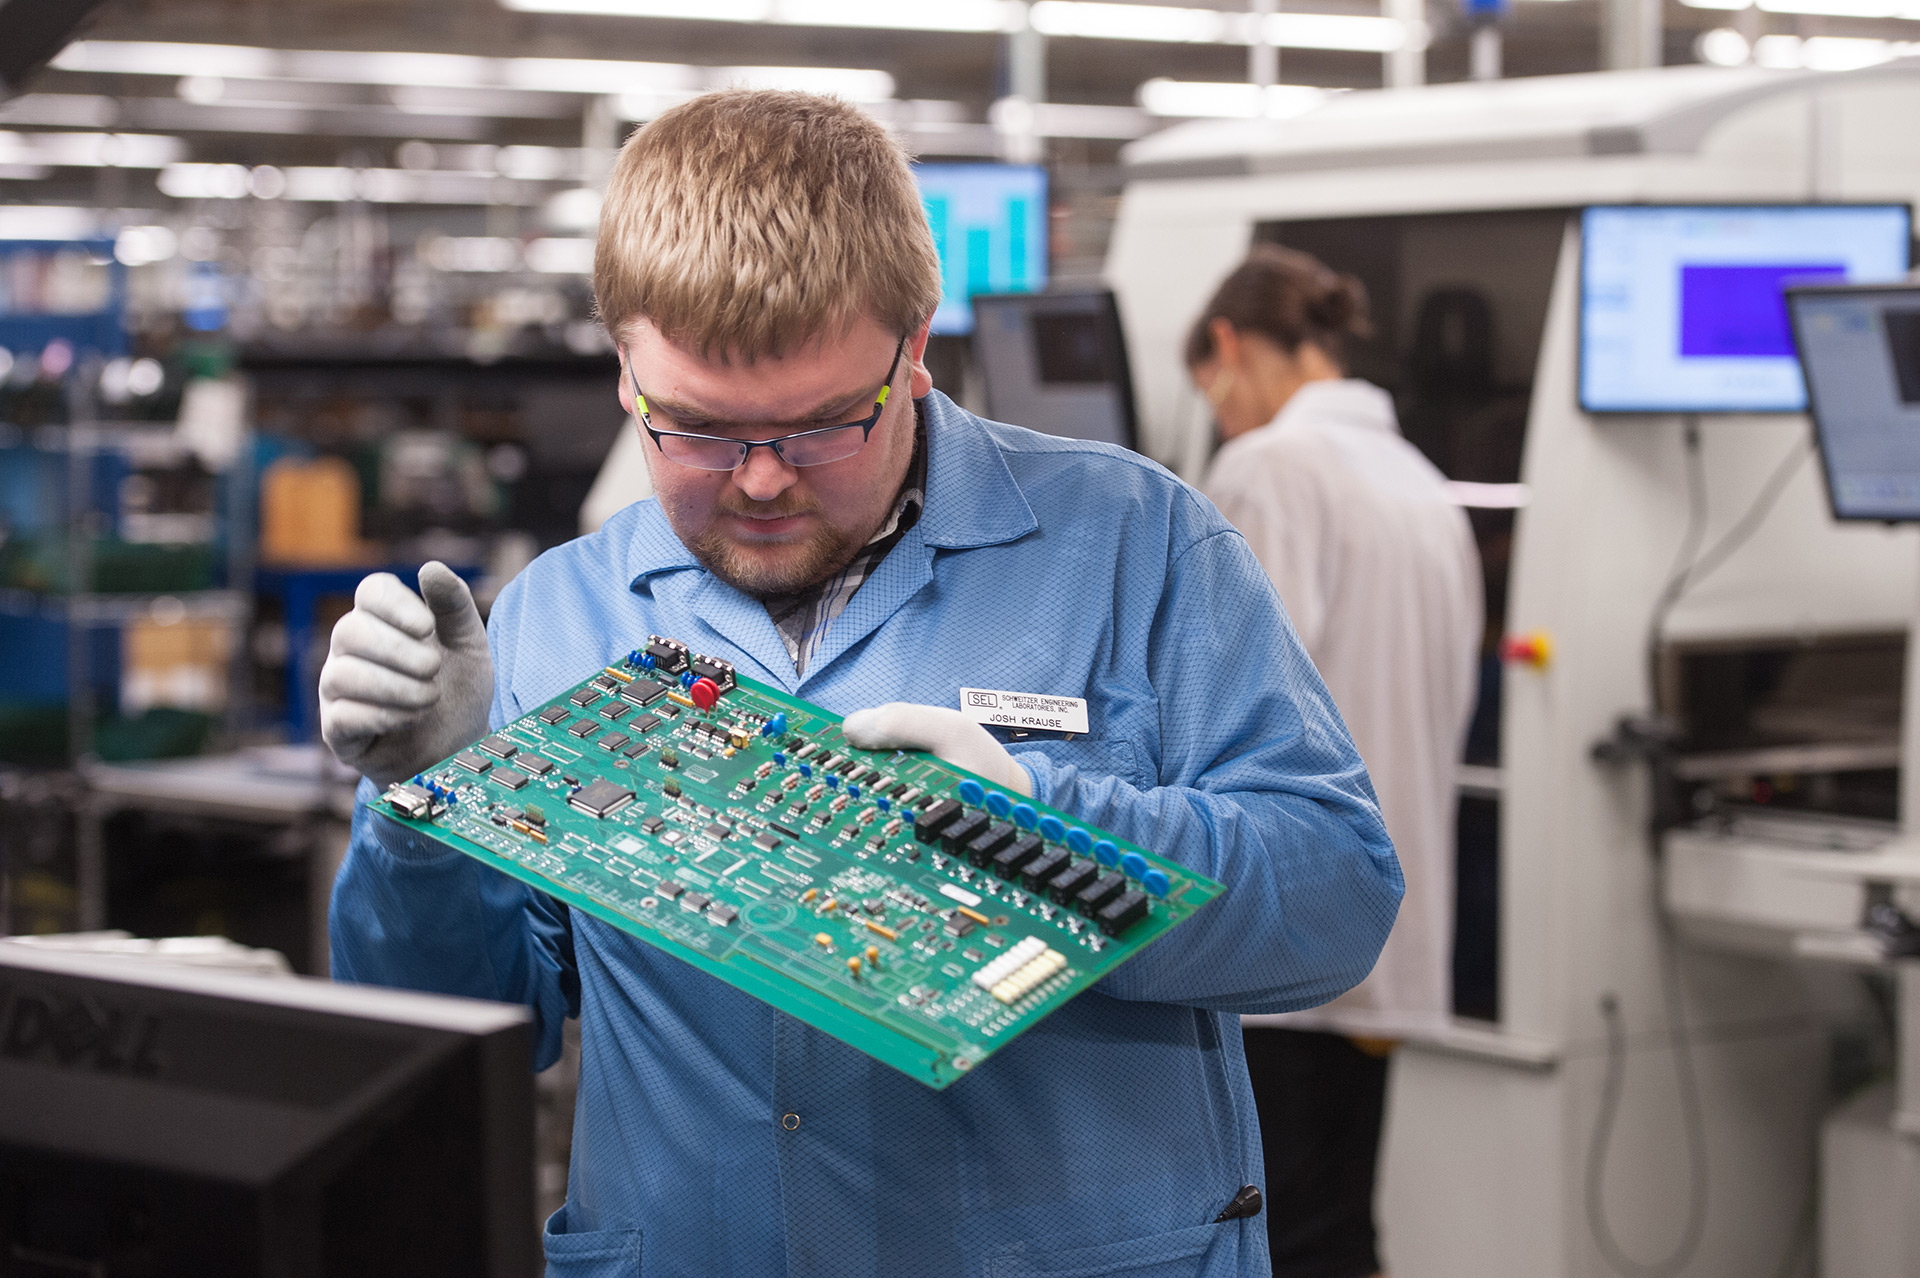 Technician inspects circuit board